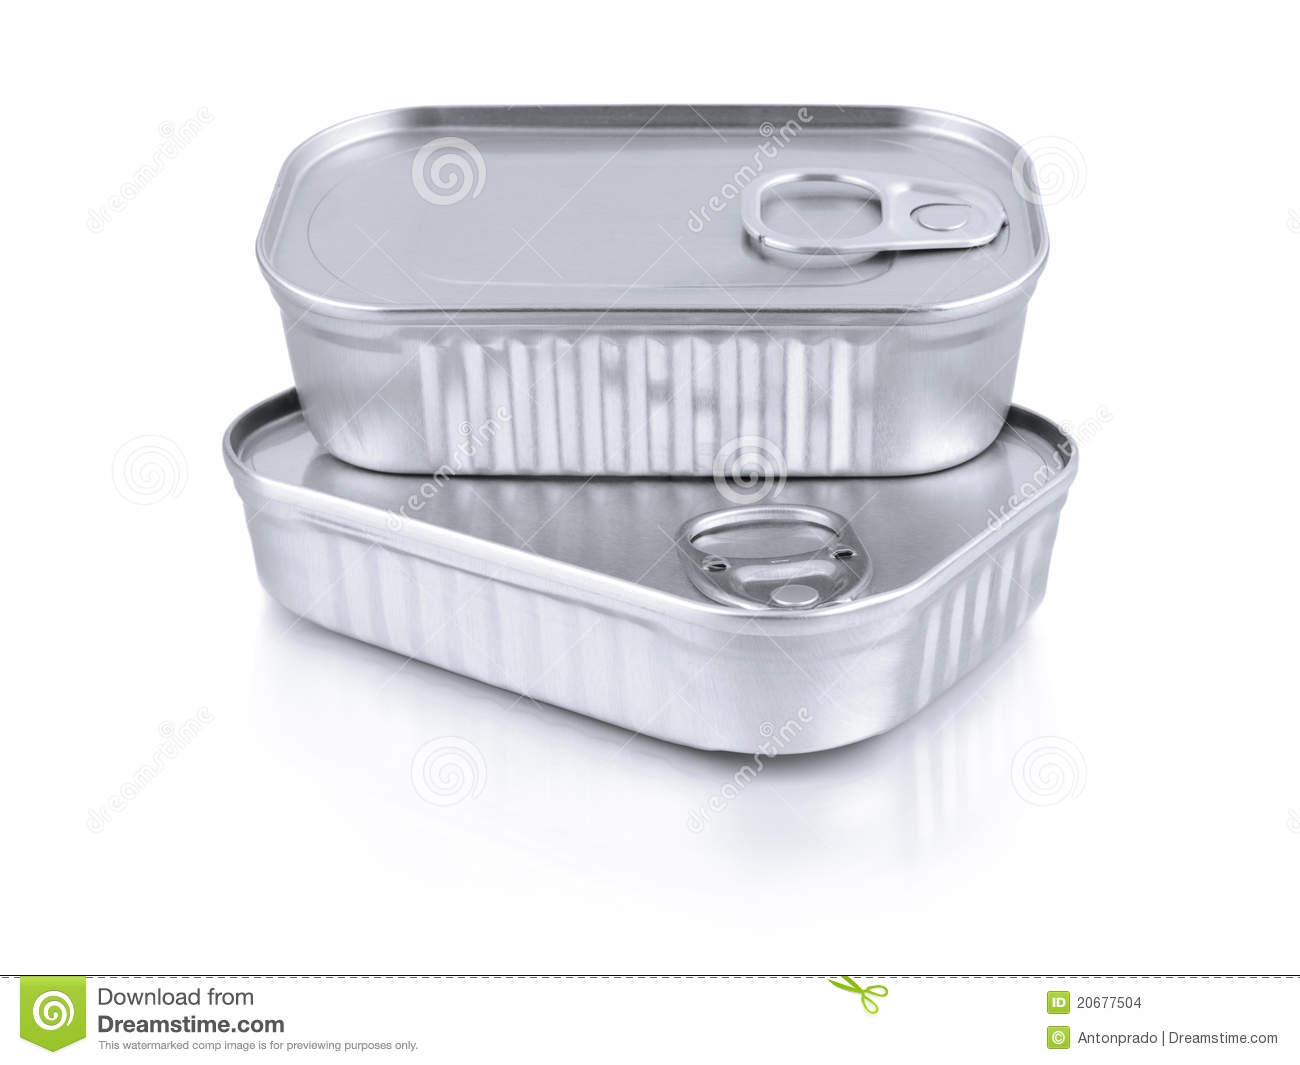 Sardine cans stock images image 20677504 for Empty sardine cans